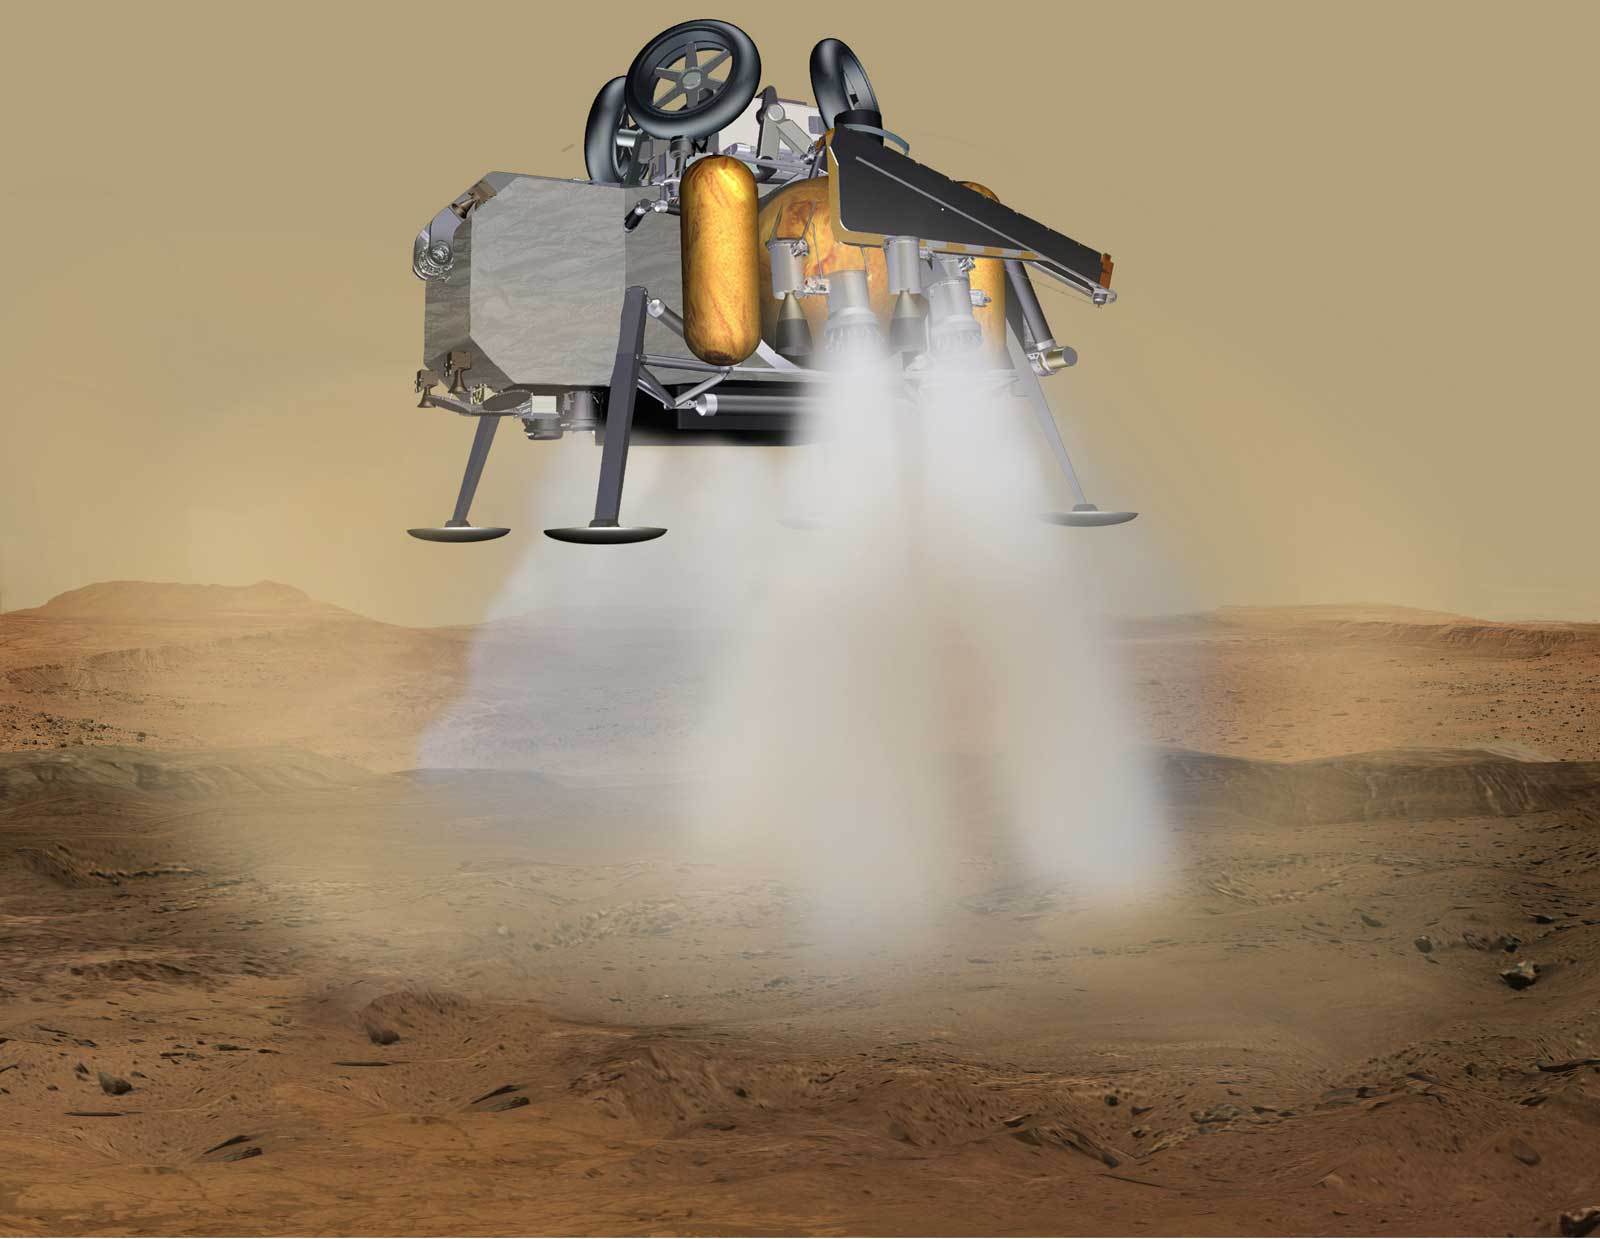 In this illustration of a Mars sample return mission concept, a lander carrying a fetch rover touches down on the surface of Mars.